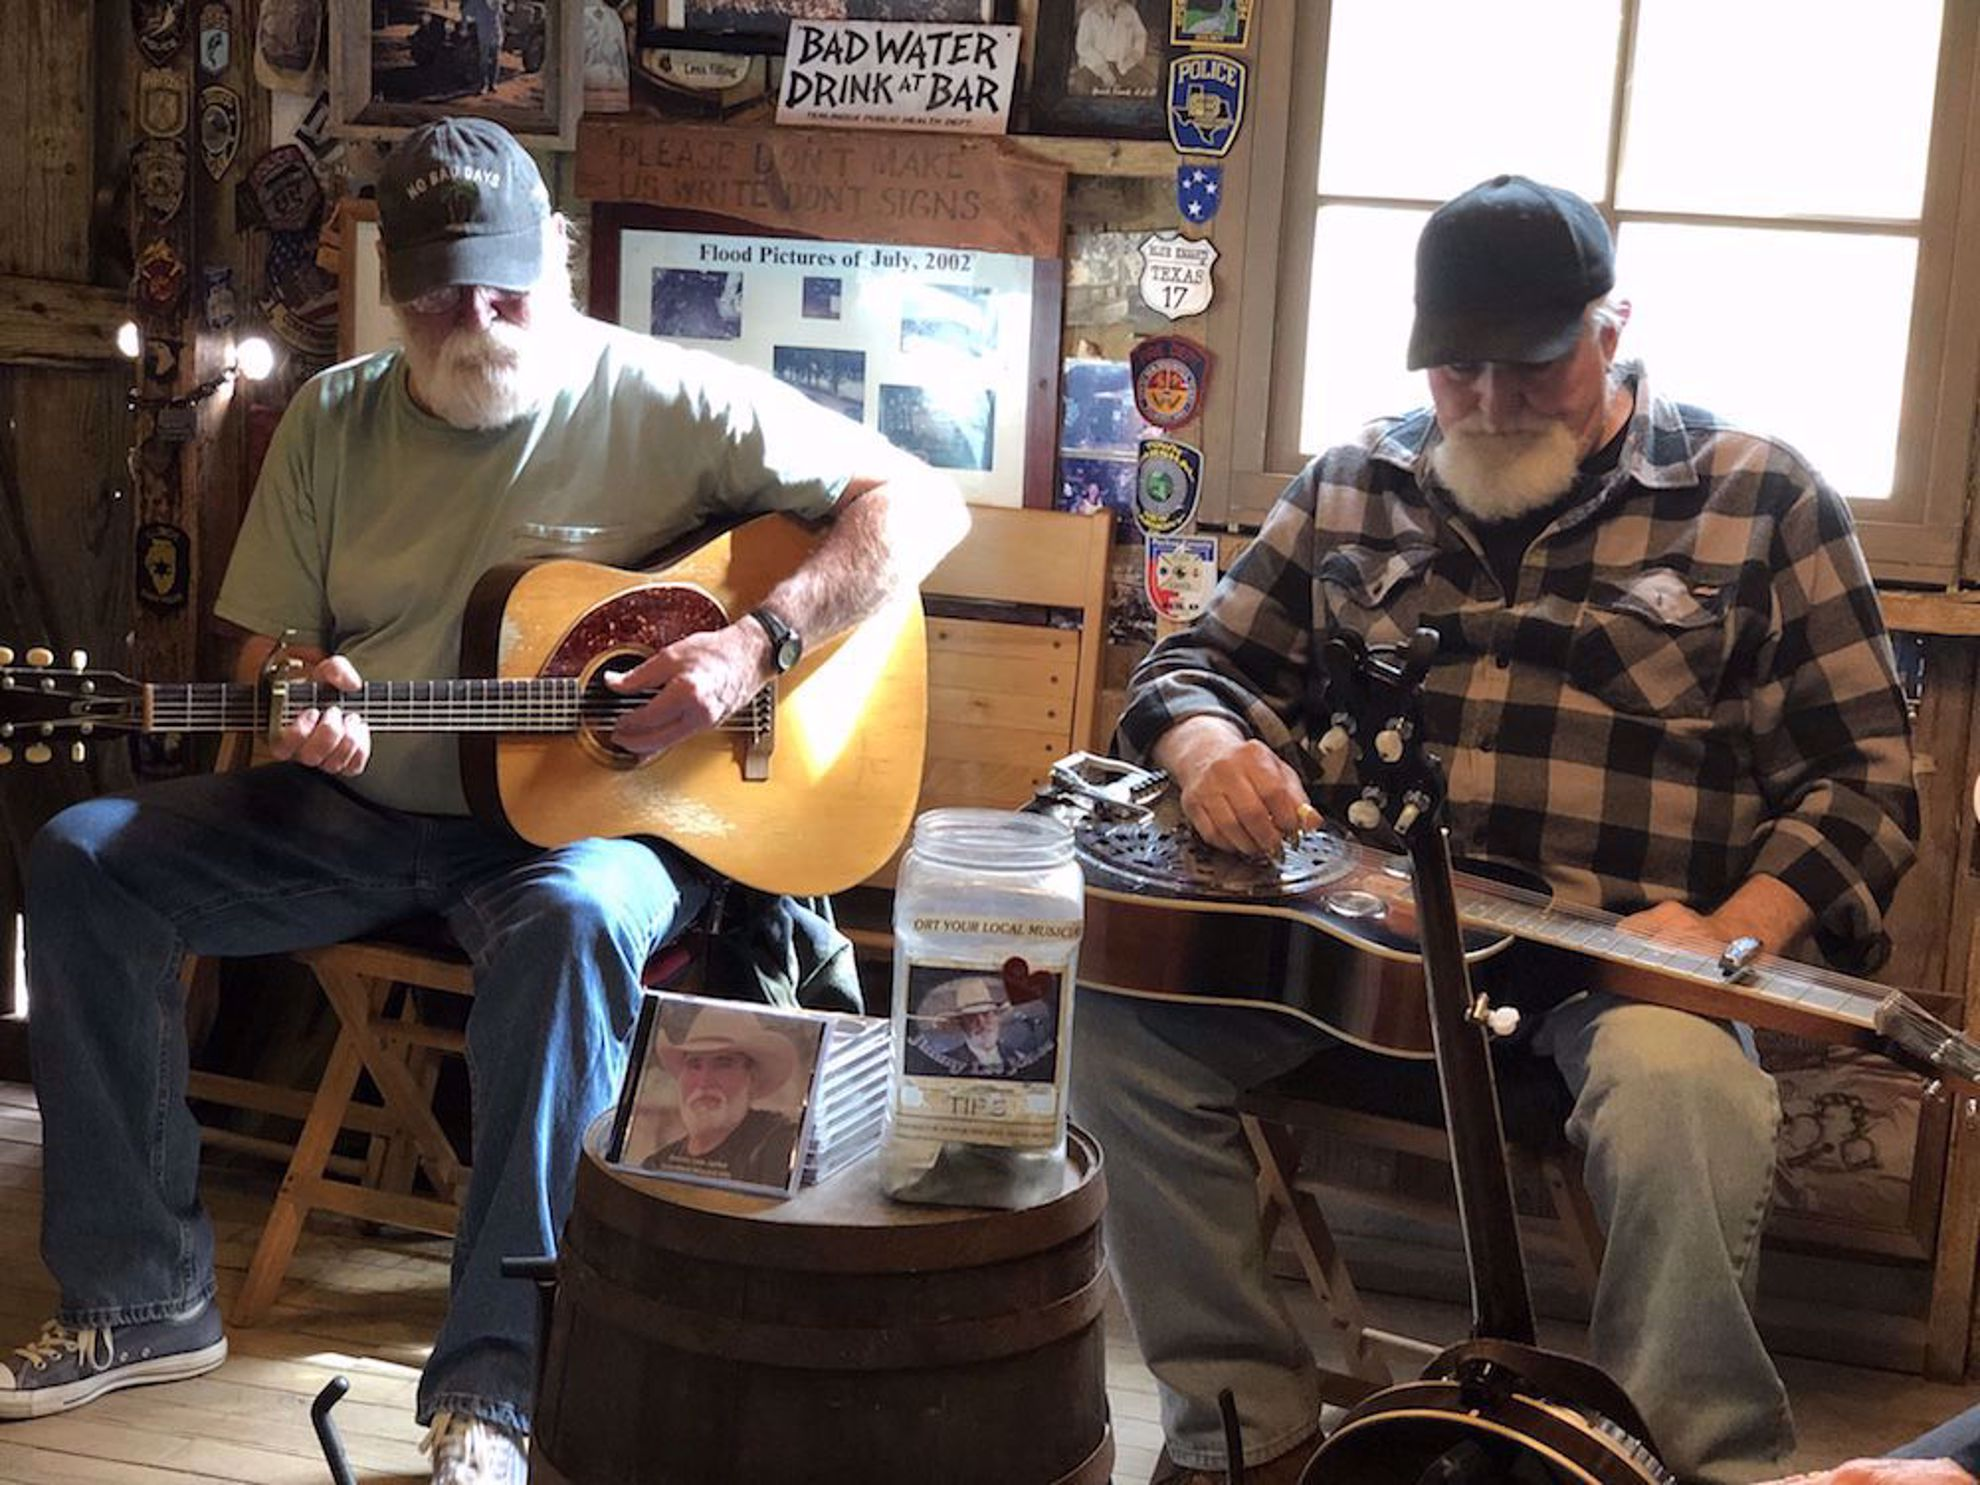 Guitar players in Luckenbach Texas